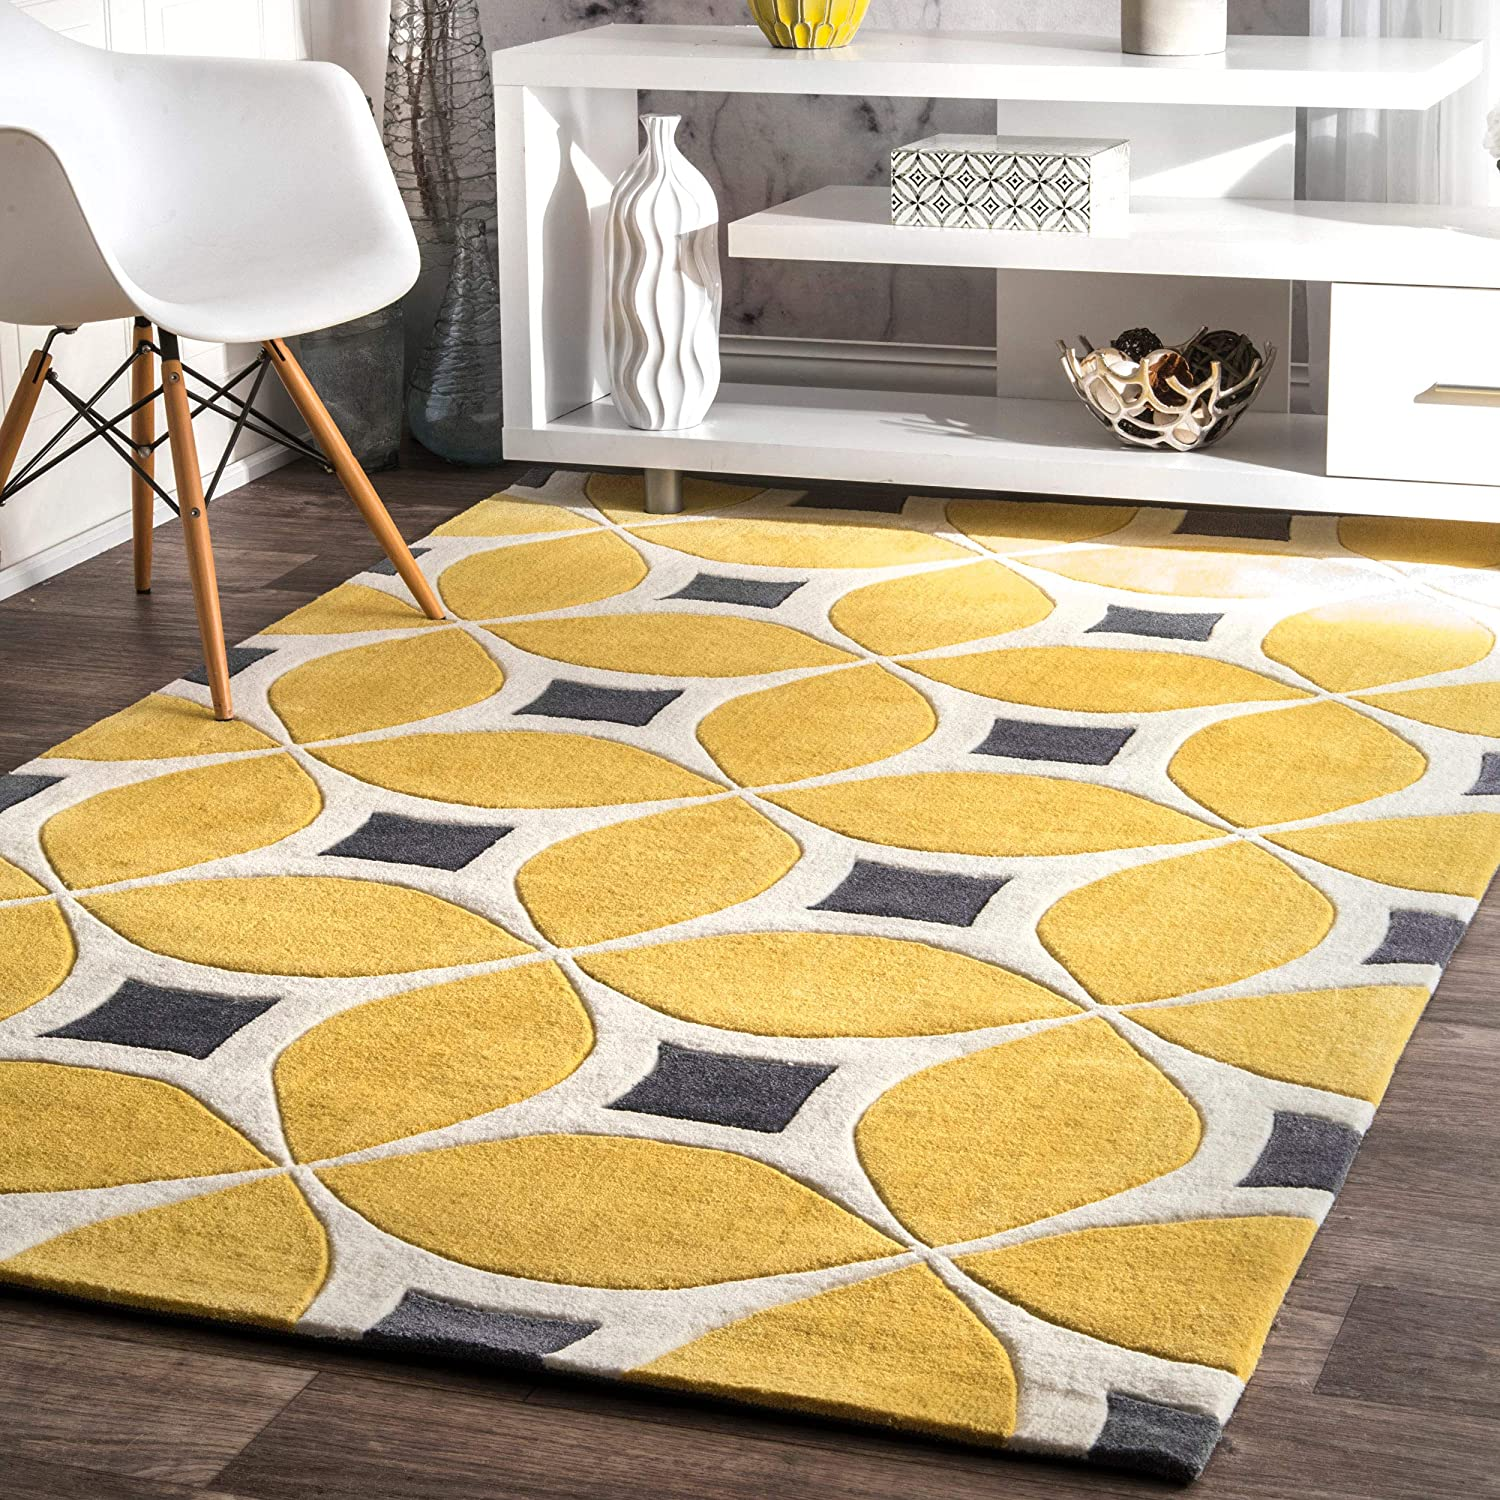 nuLOOM Gabriela Contemporary Area Rug, 6' x 9', Sunflower